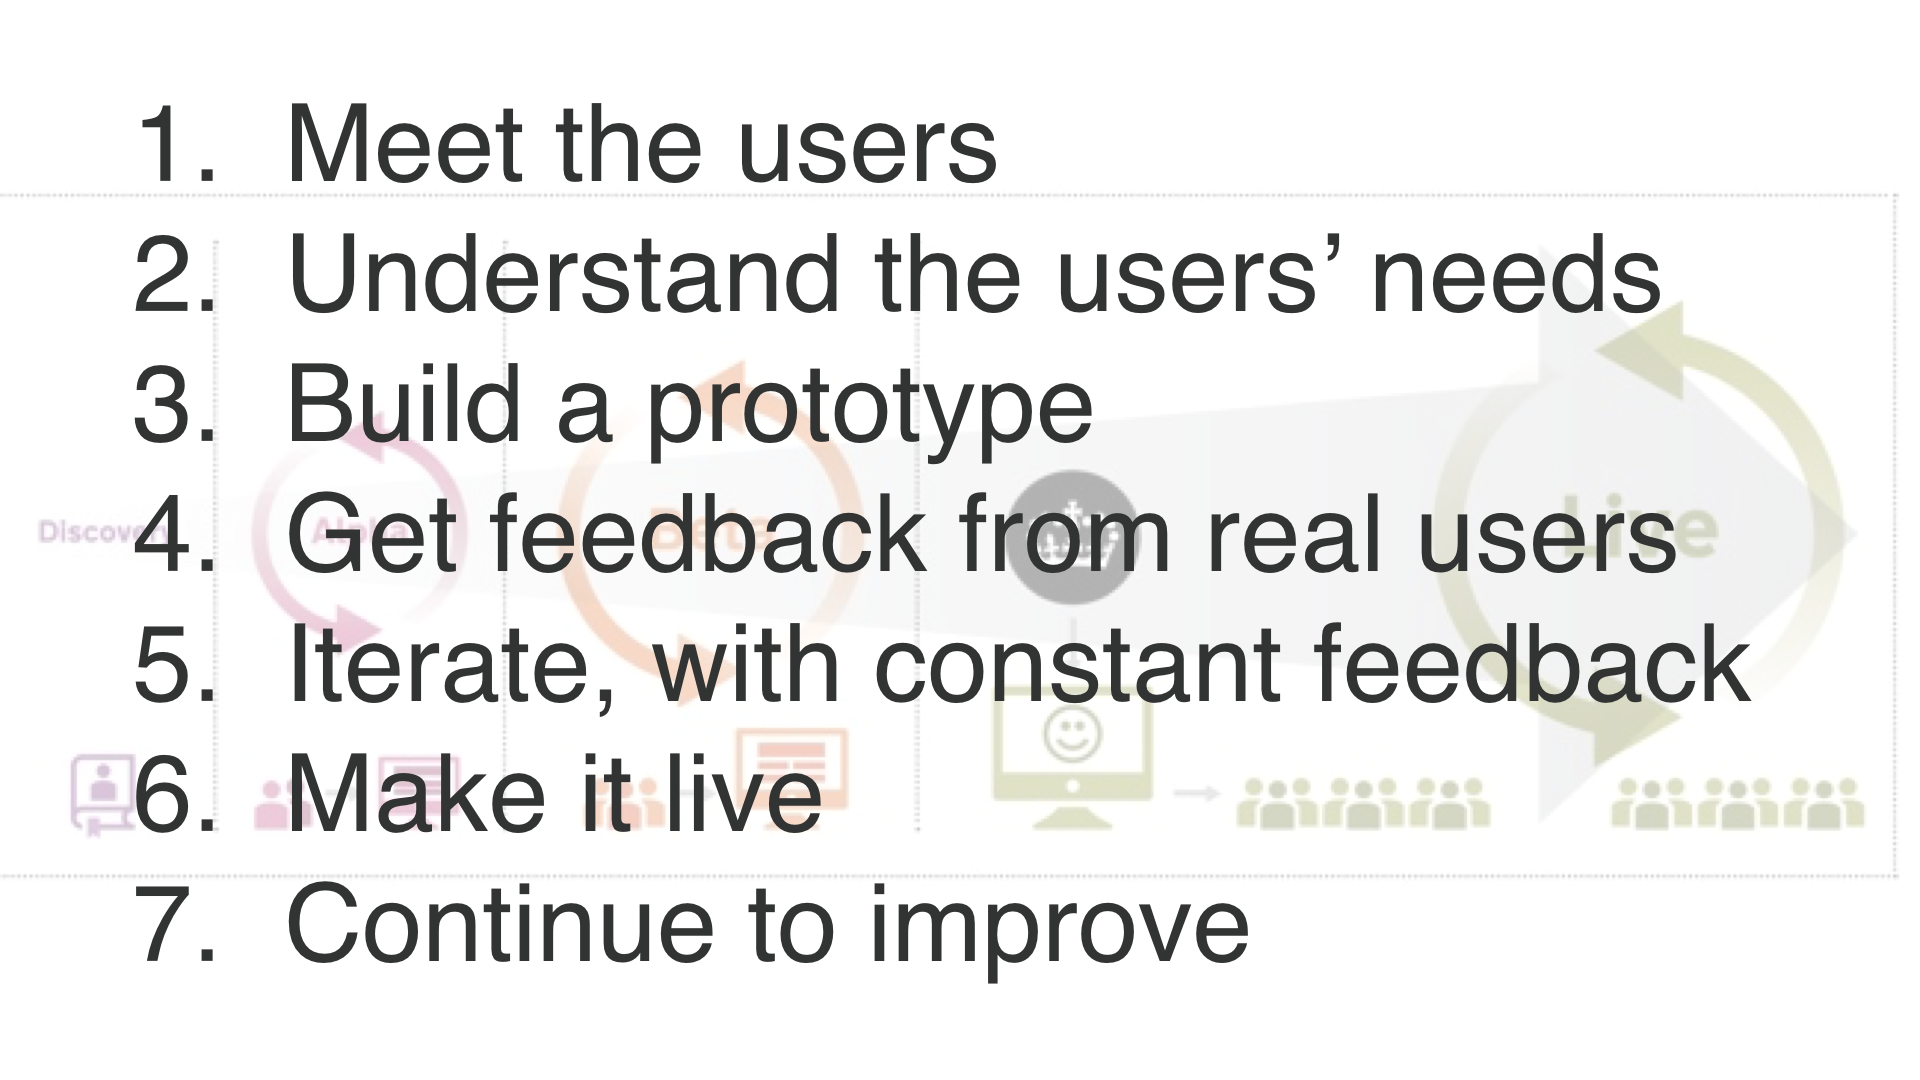 """1. meet the users. 2. understand their needs. 3. build a prototype. 4. get feedback. 5. iterate with constant feedback. 6. make it live. 7. continue to improve"""